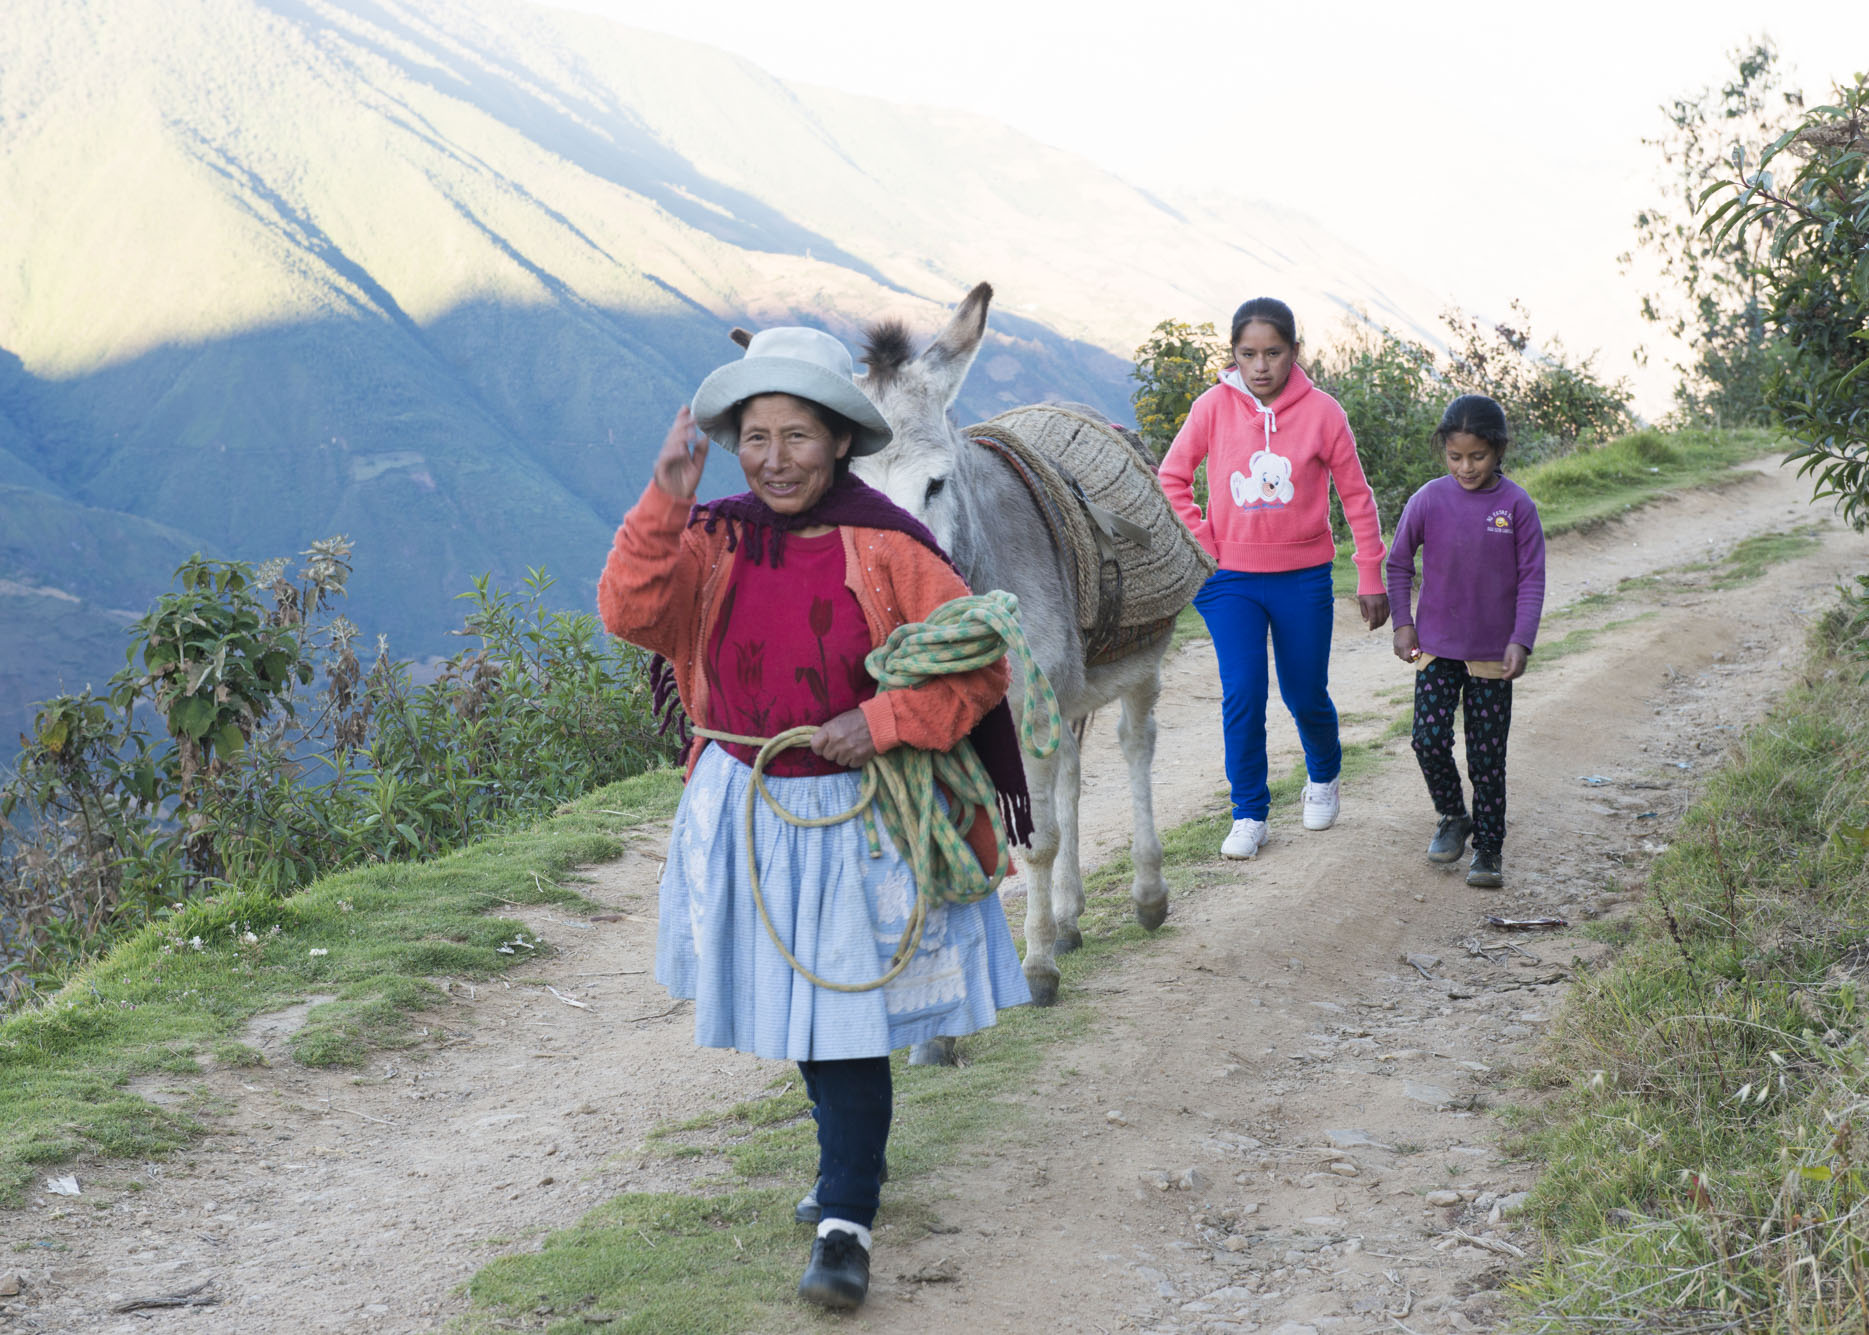 A woman walking a donkey on a trail